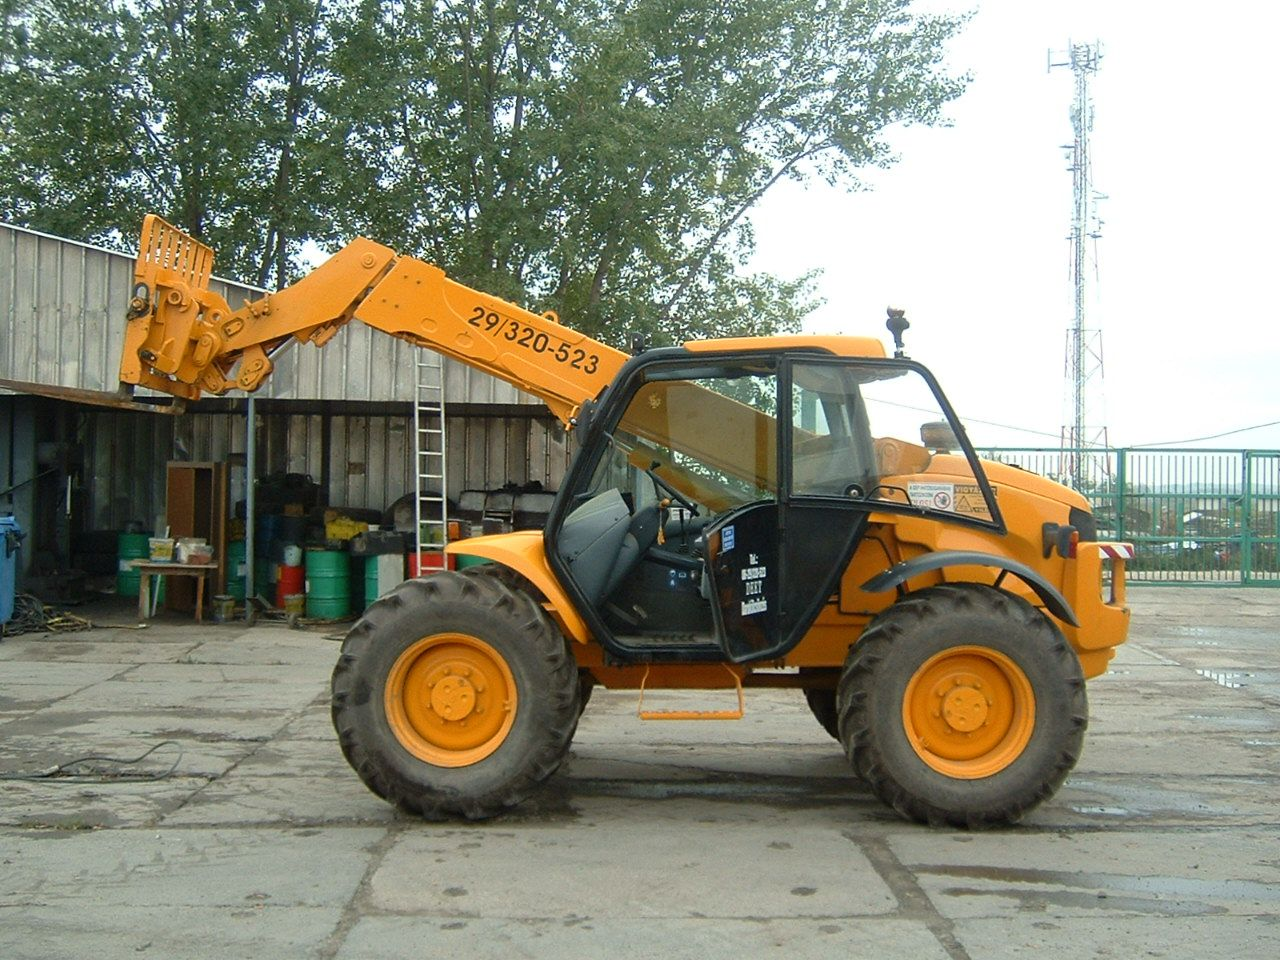 emelés - New Holland LM 630 425/A